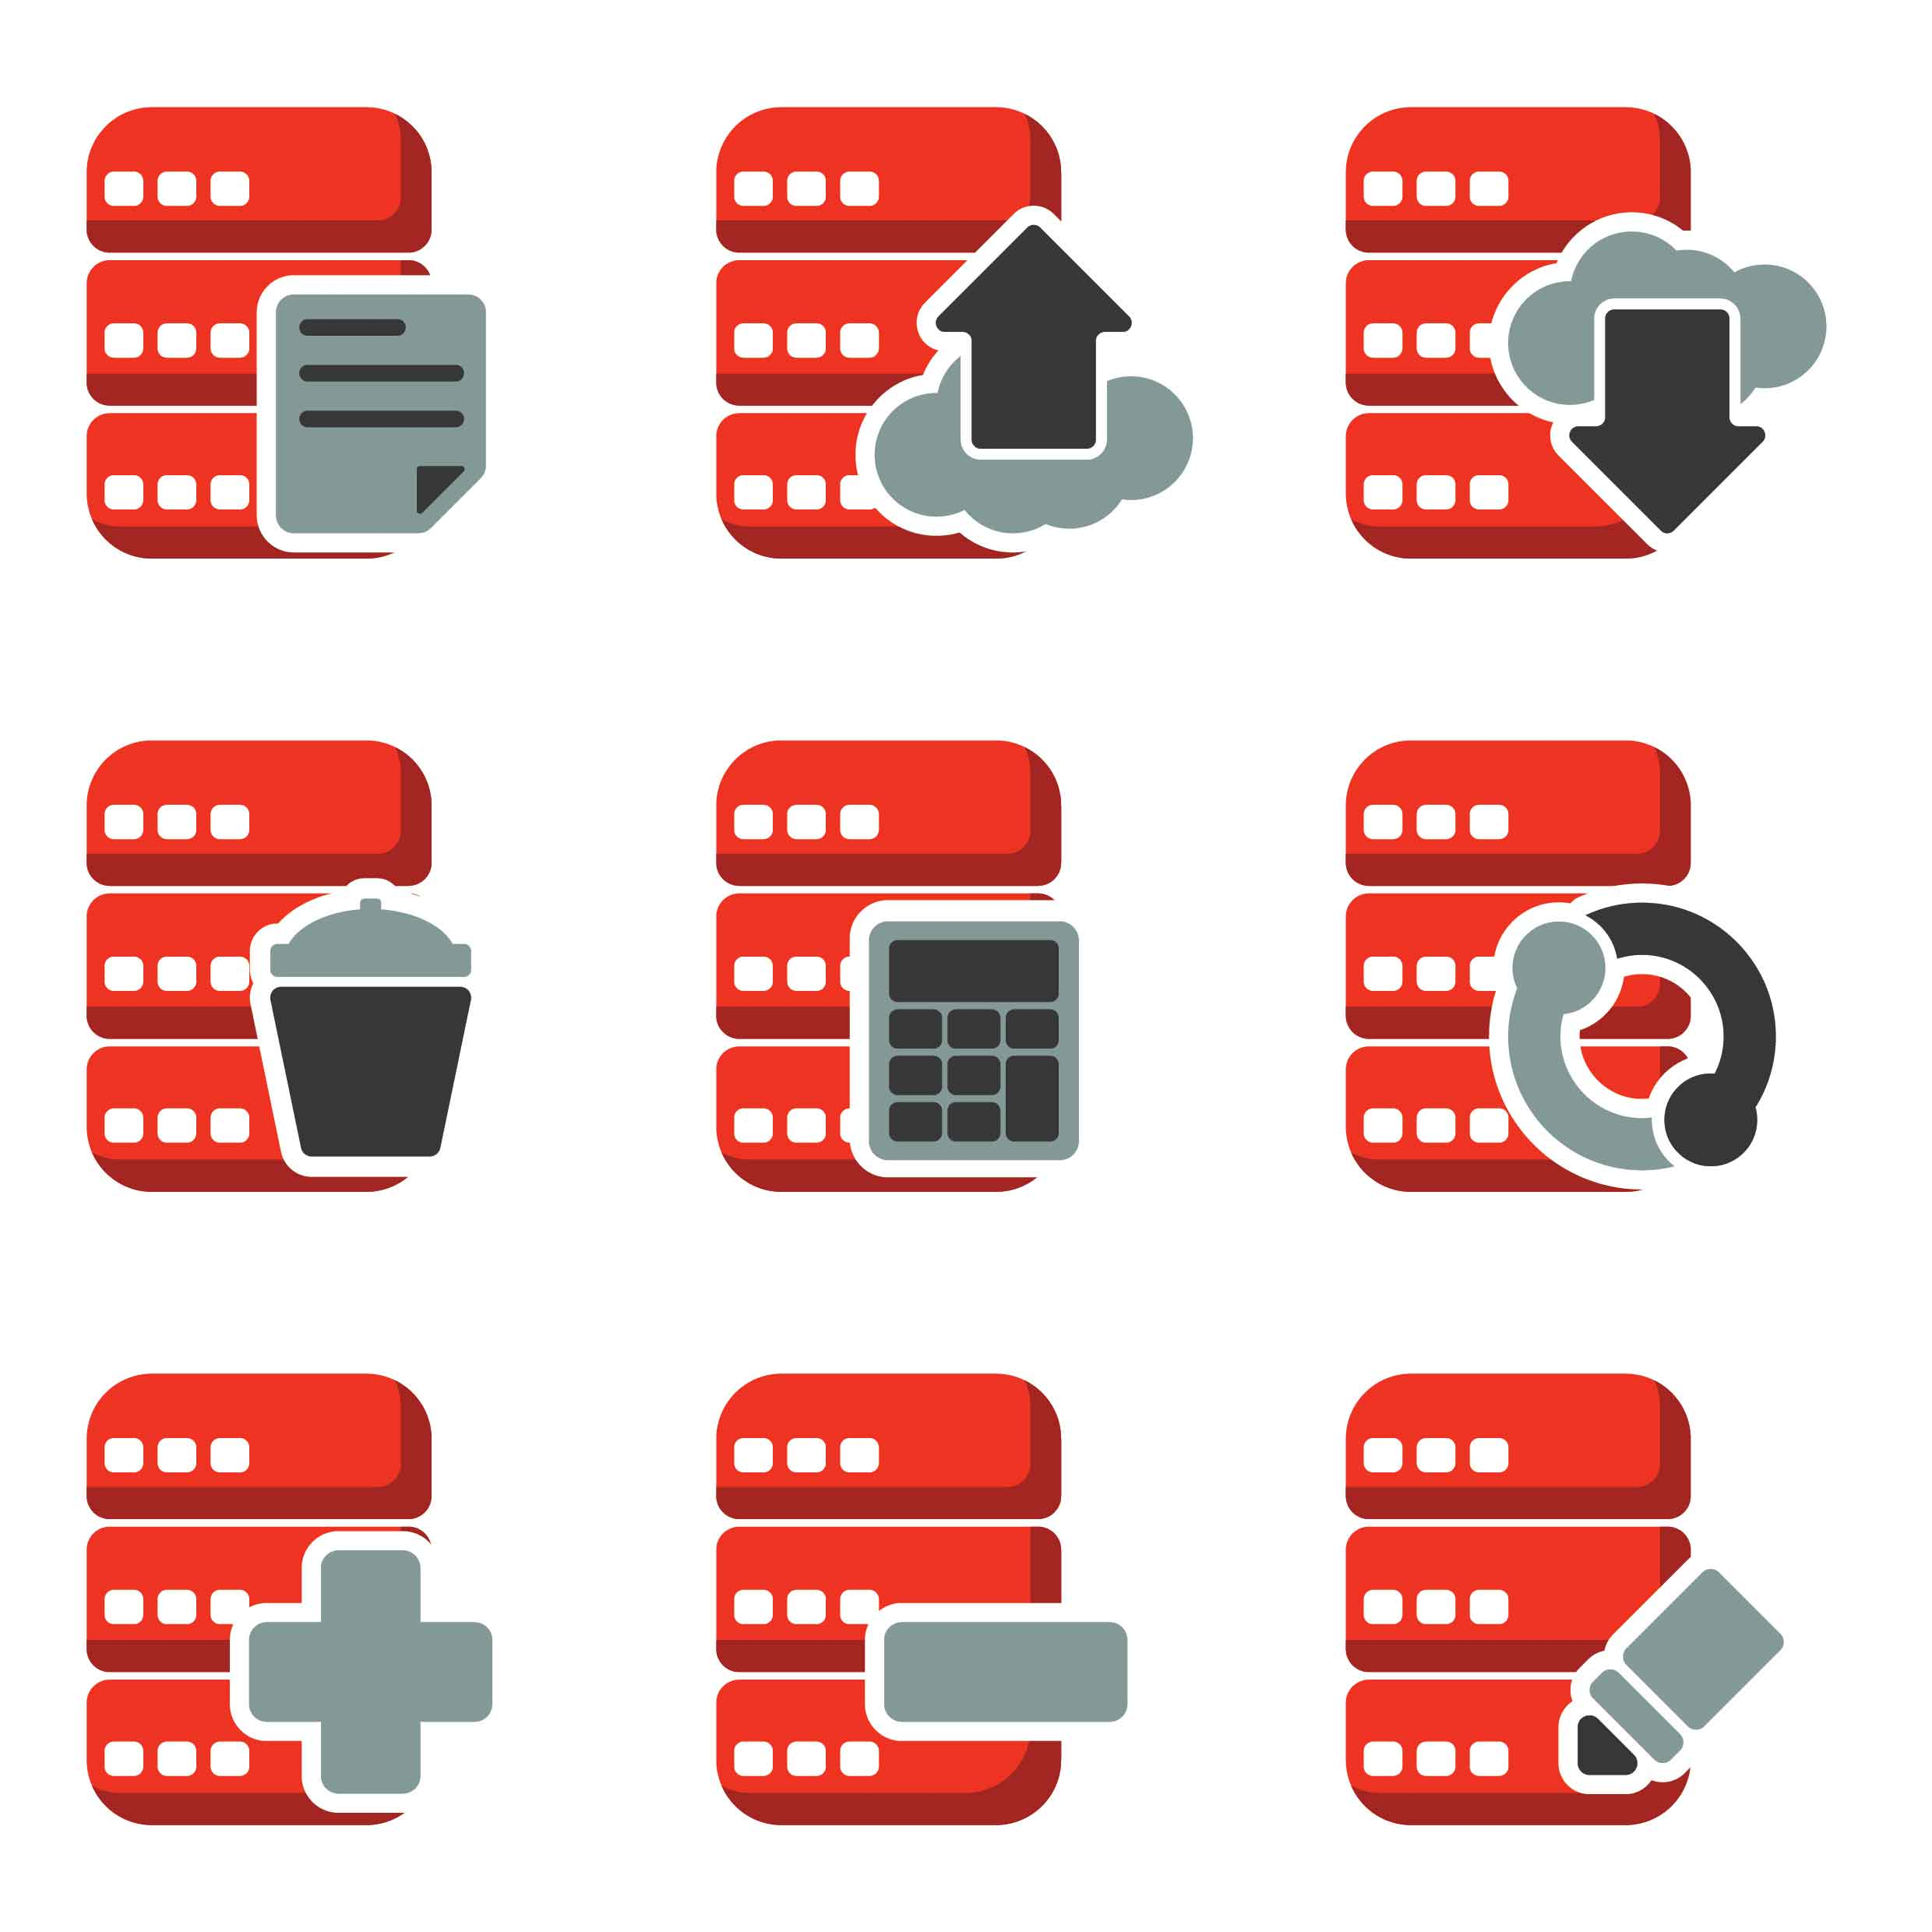 Database Icon Vector - Download Free Vectors, Clipart ...  Database Icon